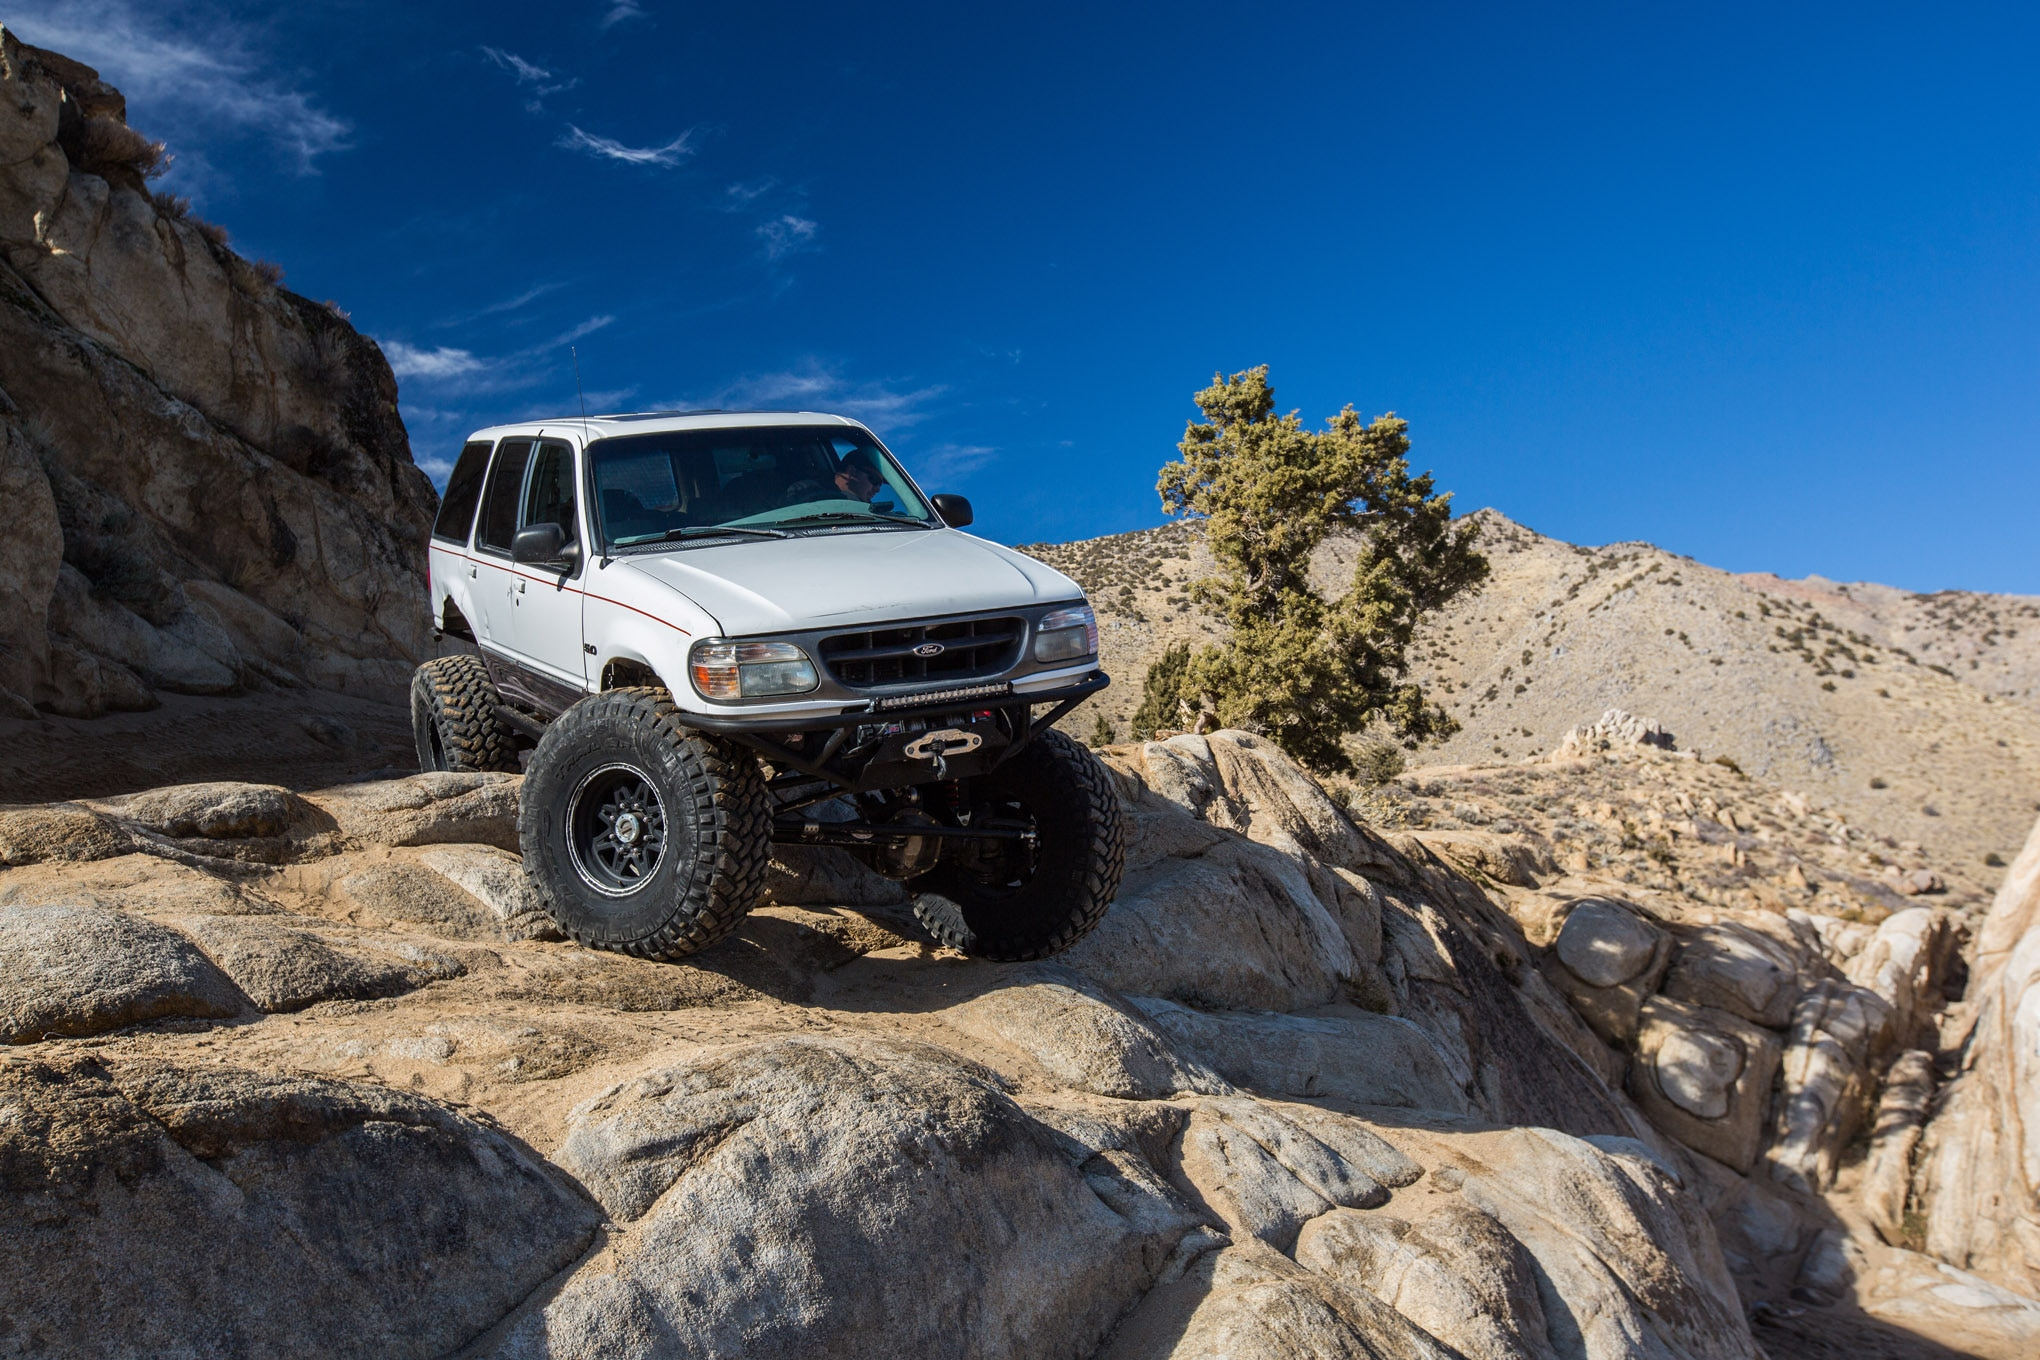 Backcountry roaming in a 2016 Ford Explorer Platinum